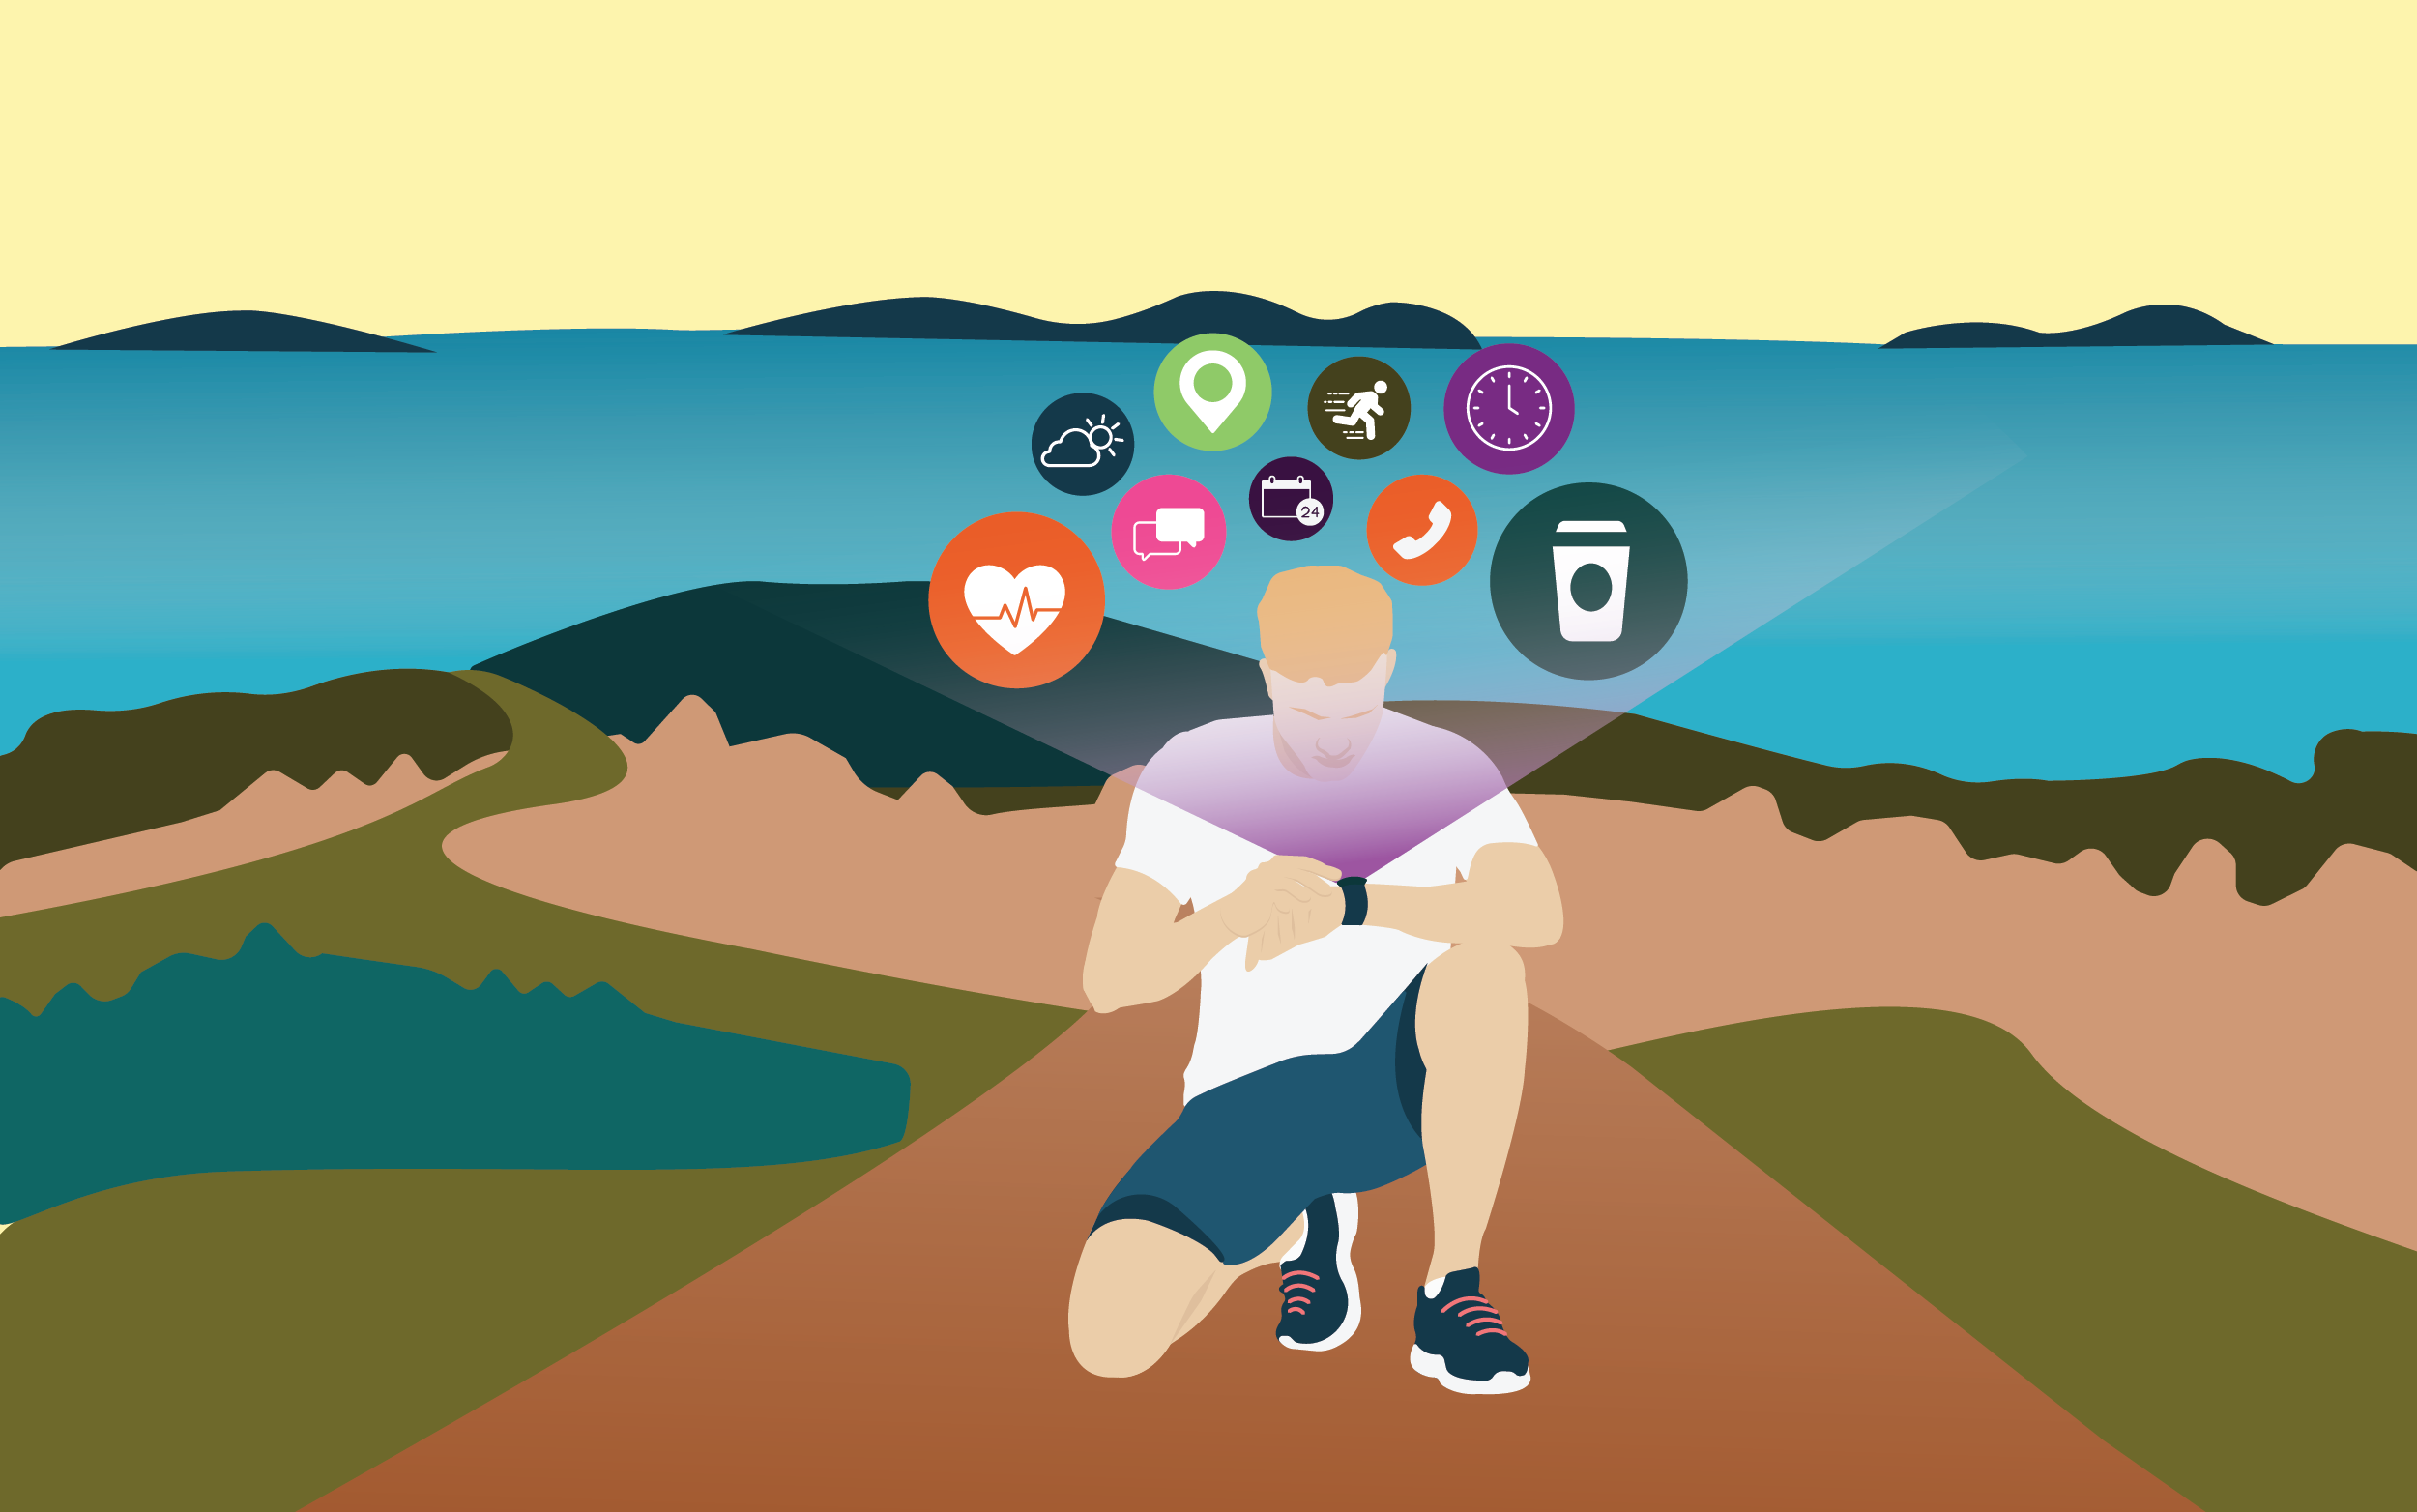 Runner stopped on the trail looking at fitness tracker with circles showing various apps floating around his head